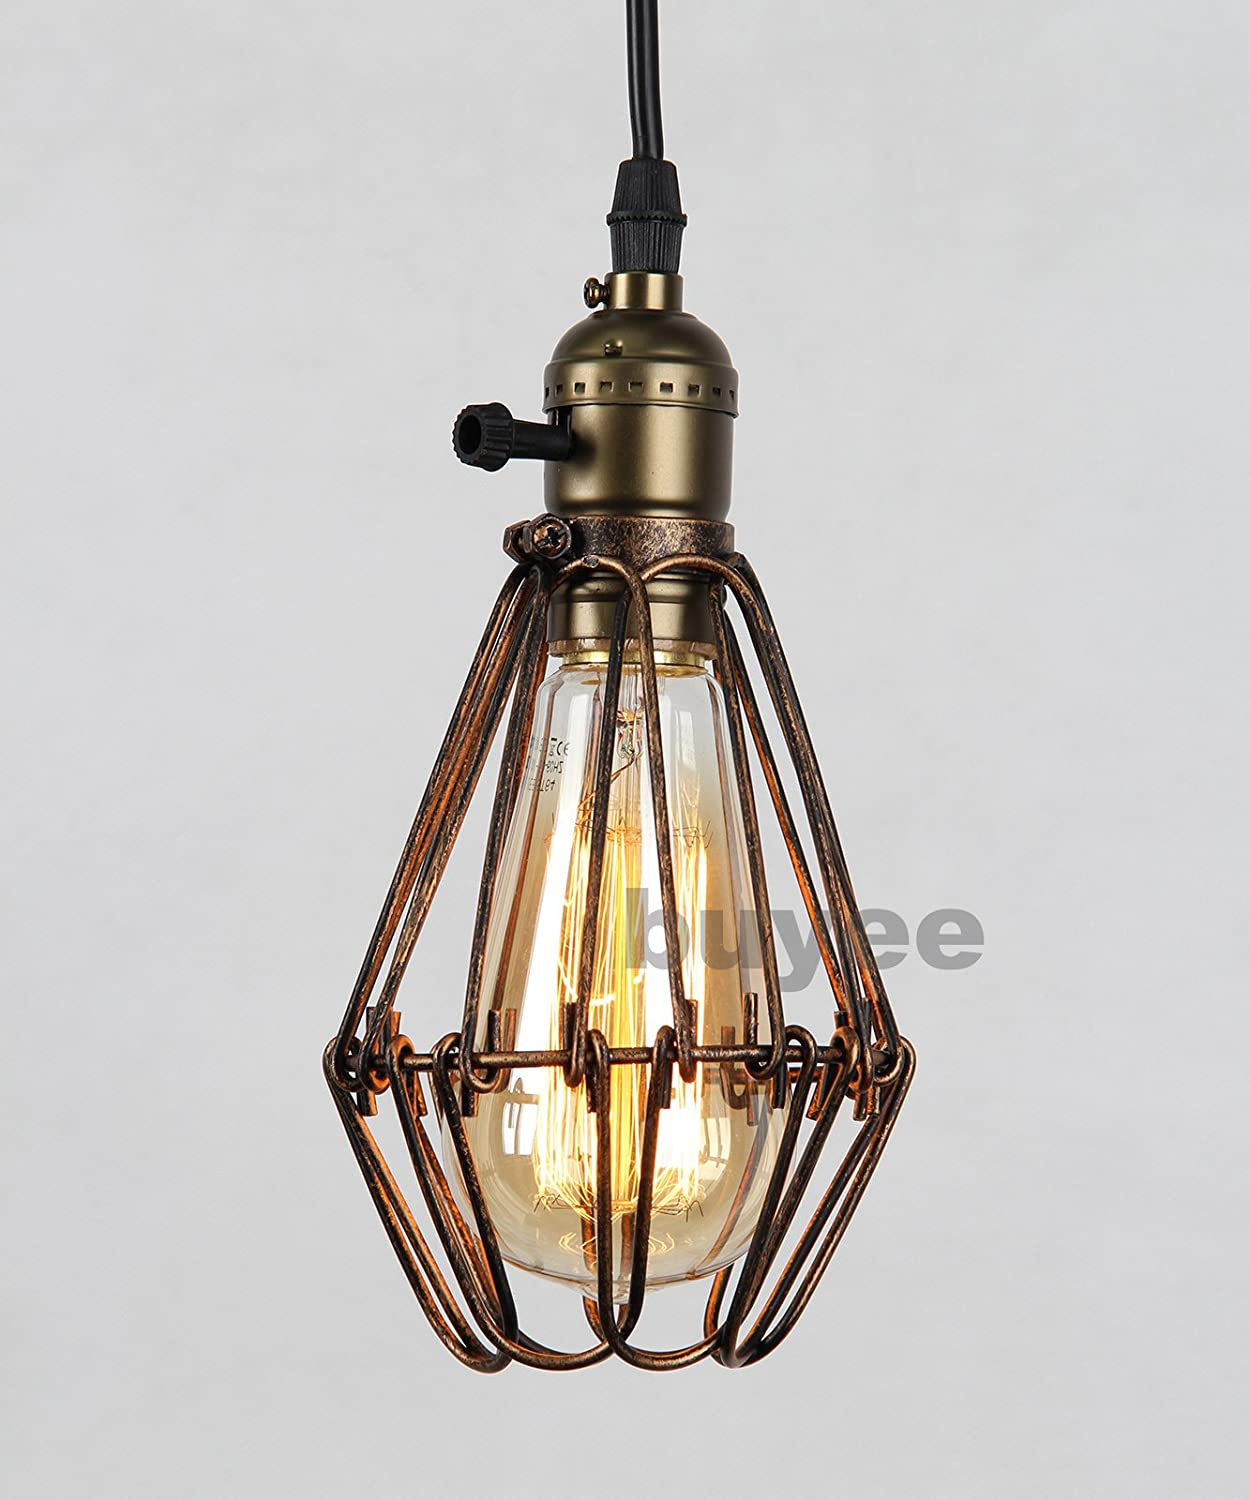 Buyee modern vintage industrial opening and closing birdcage loft metal fixture brown rustic pendant light fittingsbronze 1 pendant light 1 bulb